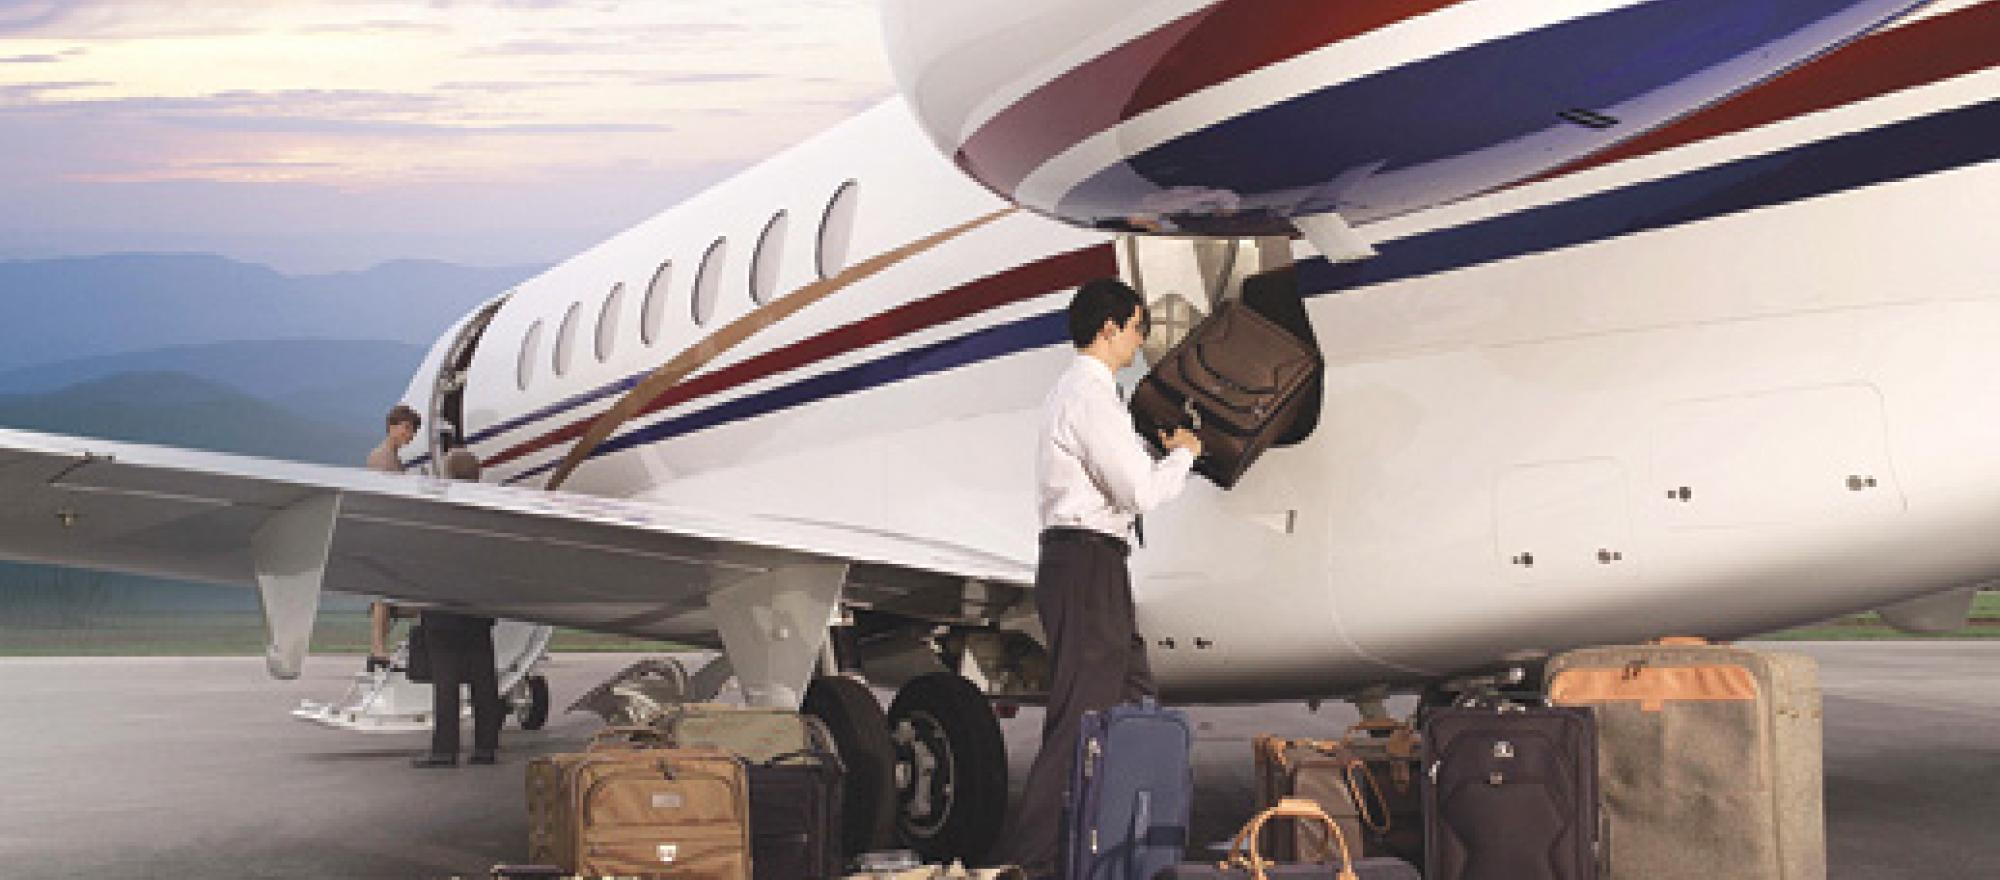 The Hawker 4000 features a 100-cubic-foot baggage compartment, a comfortable